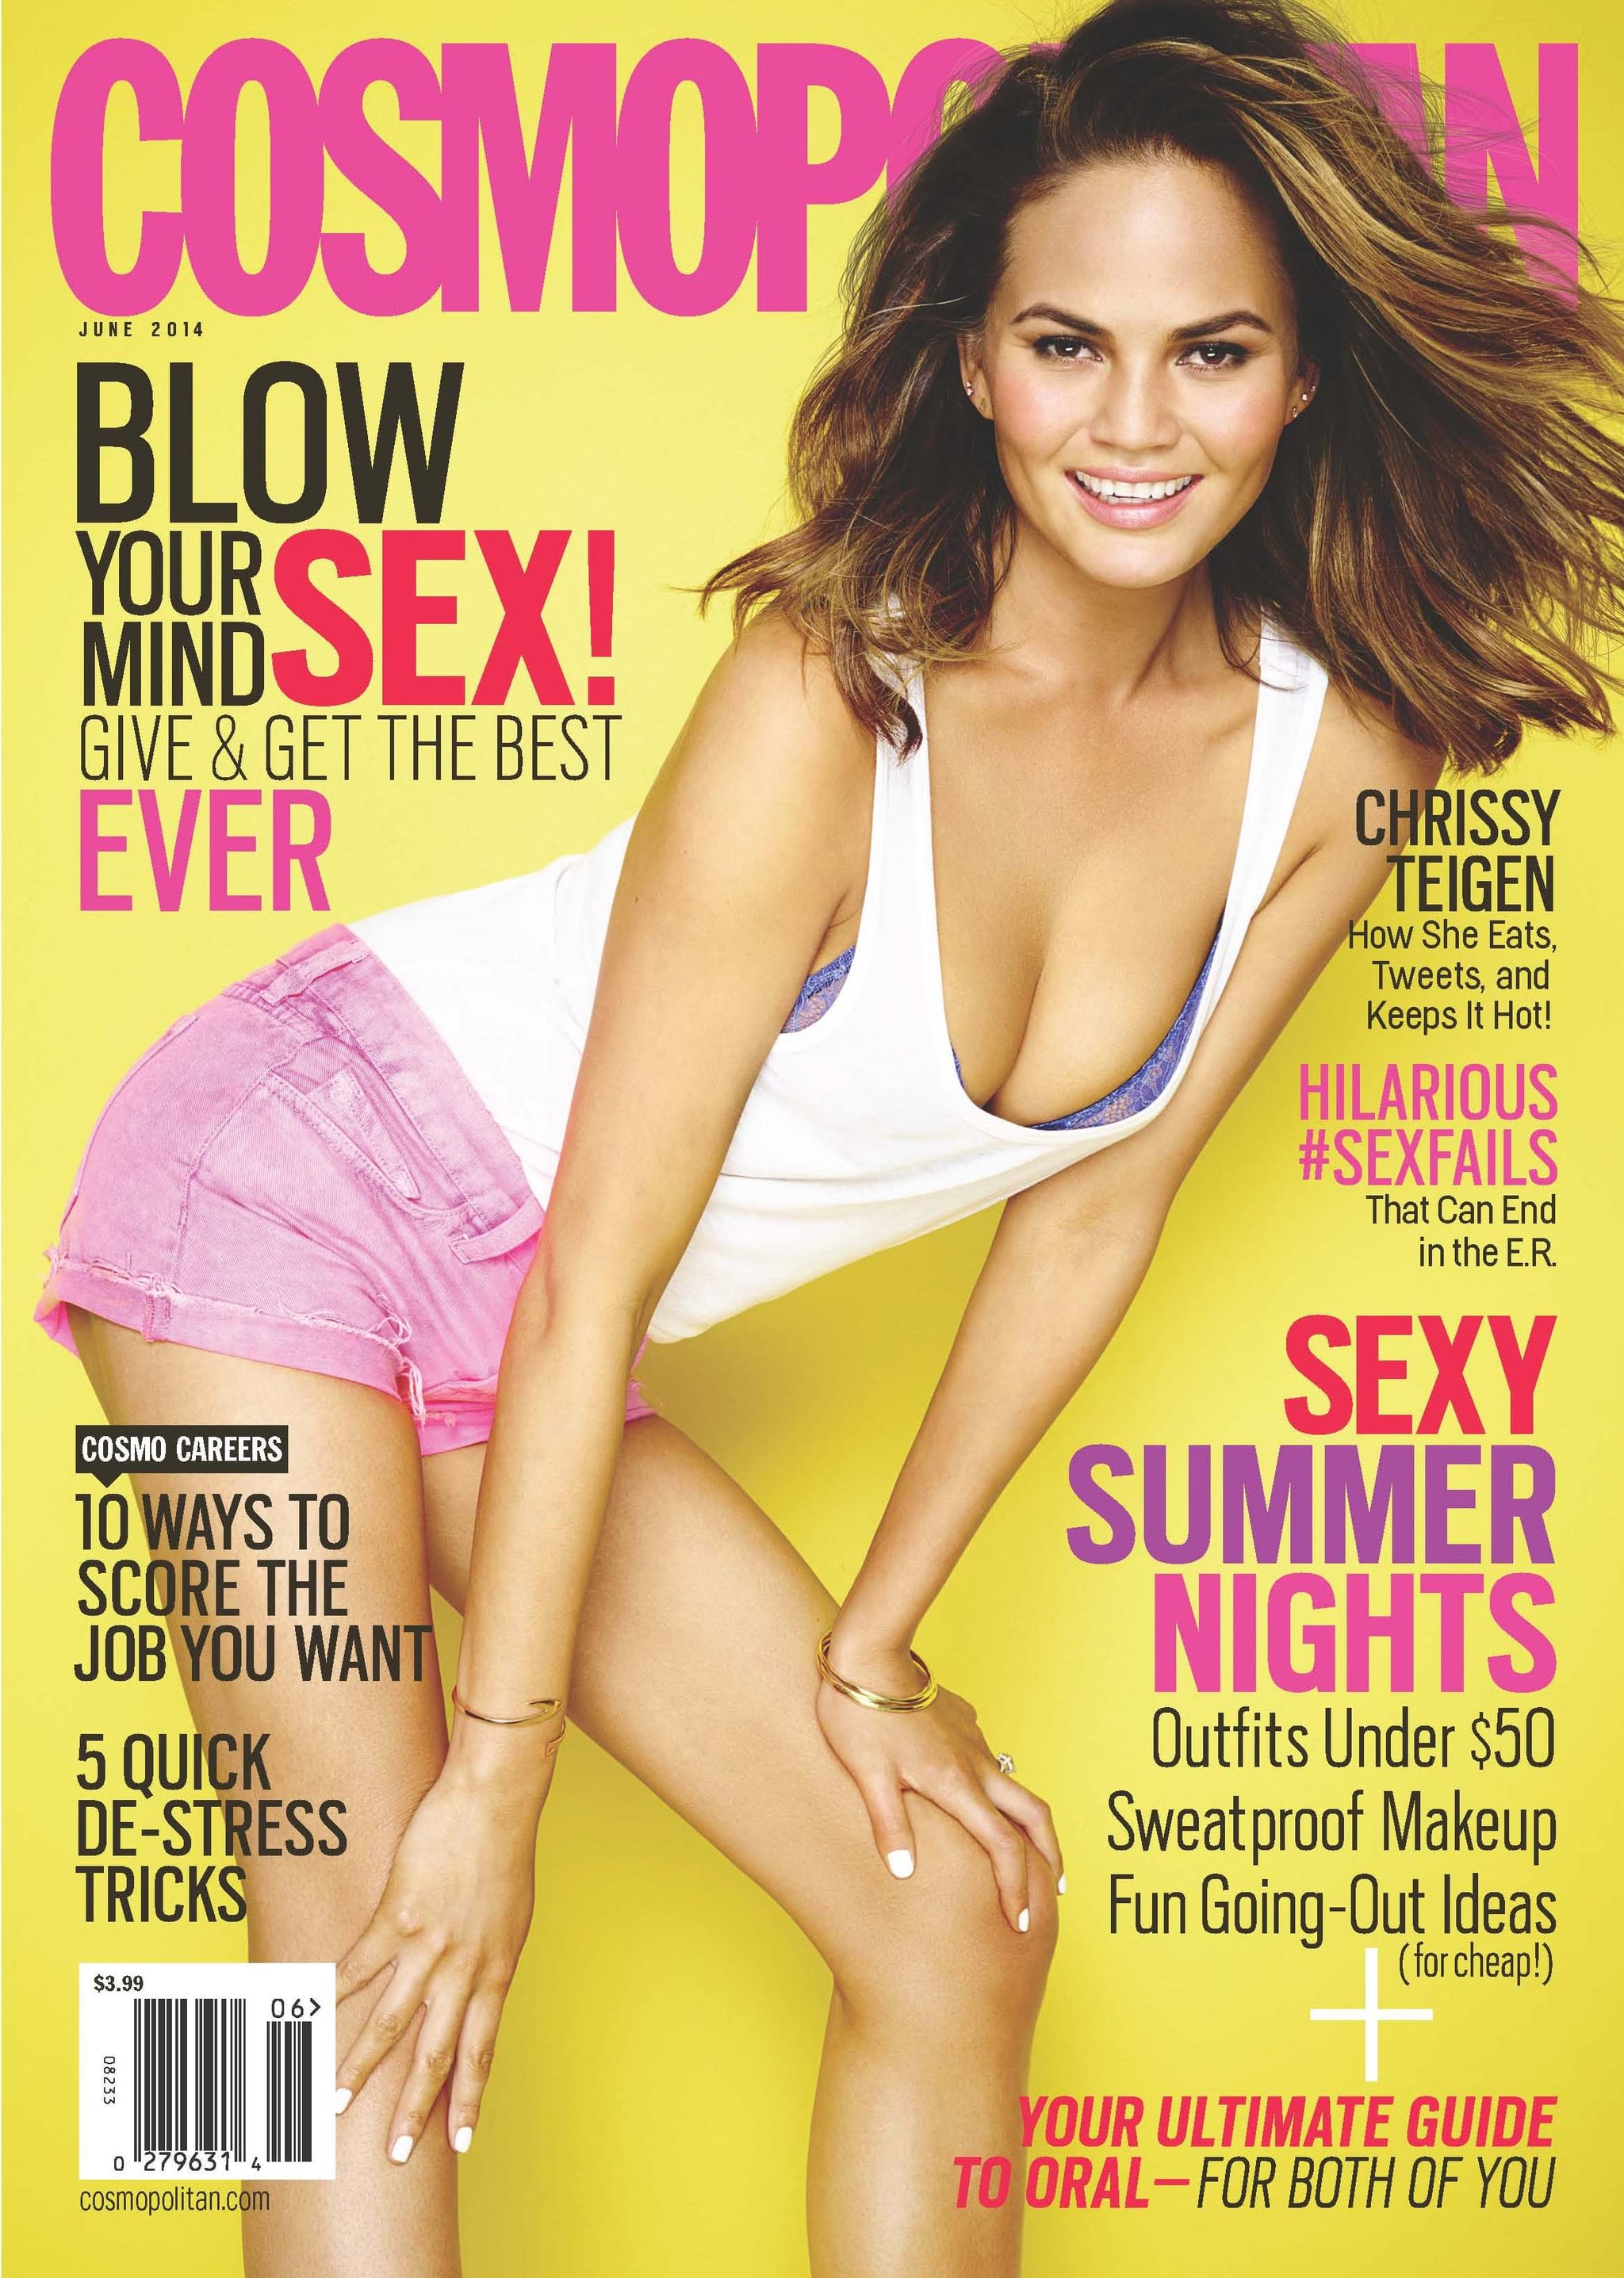 Chrissy struck a pose for the cover. Source: Cosmopolitan / Eric Ray Davidson